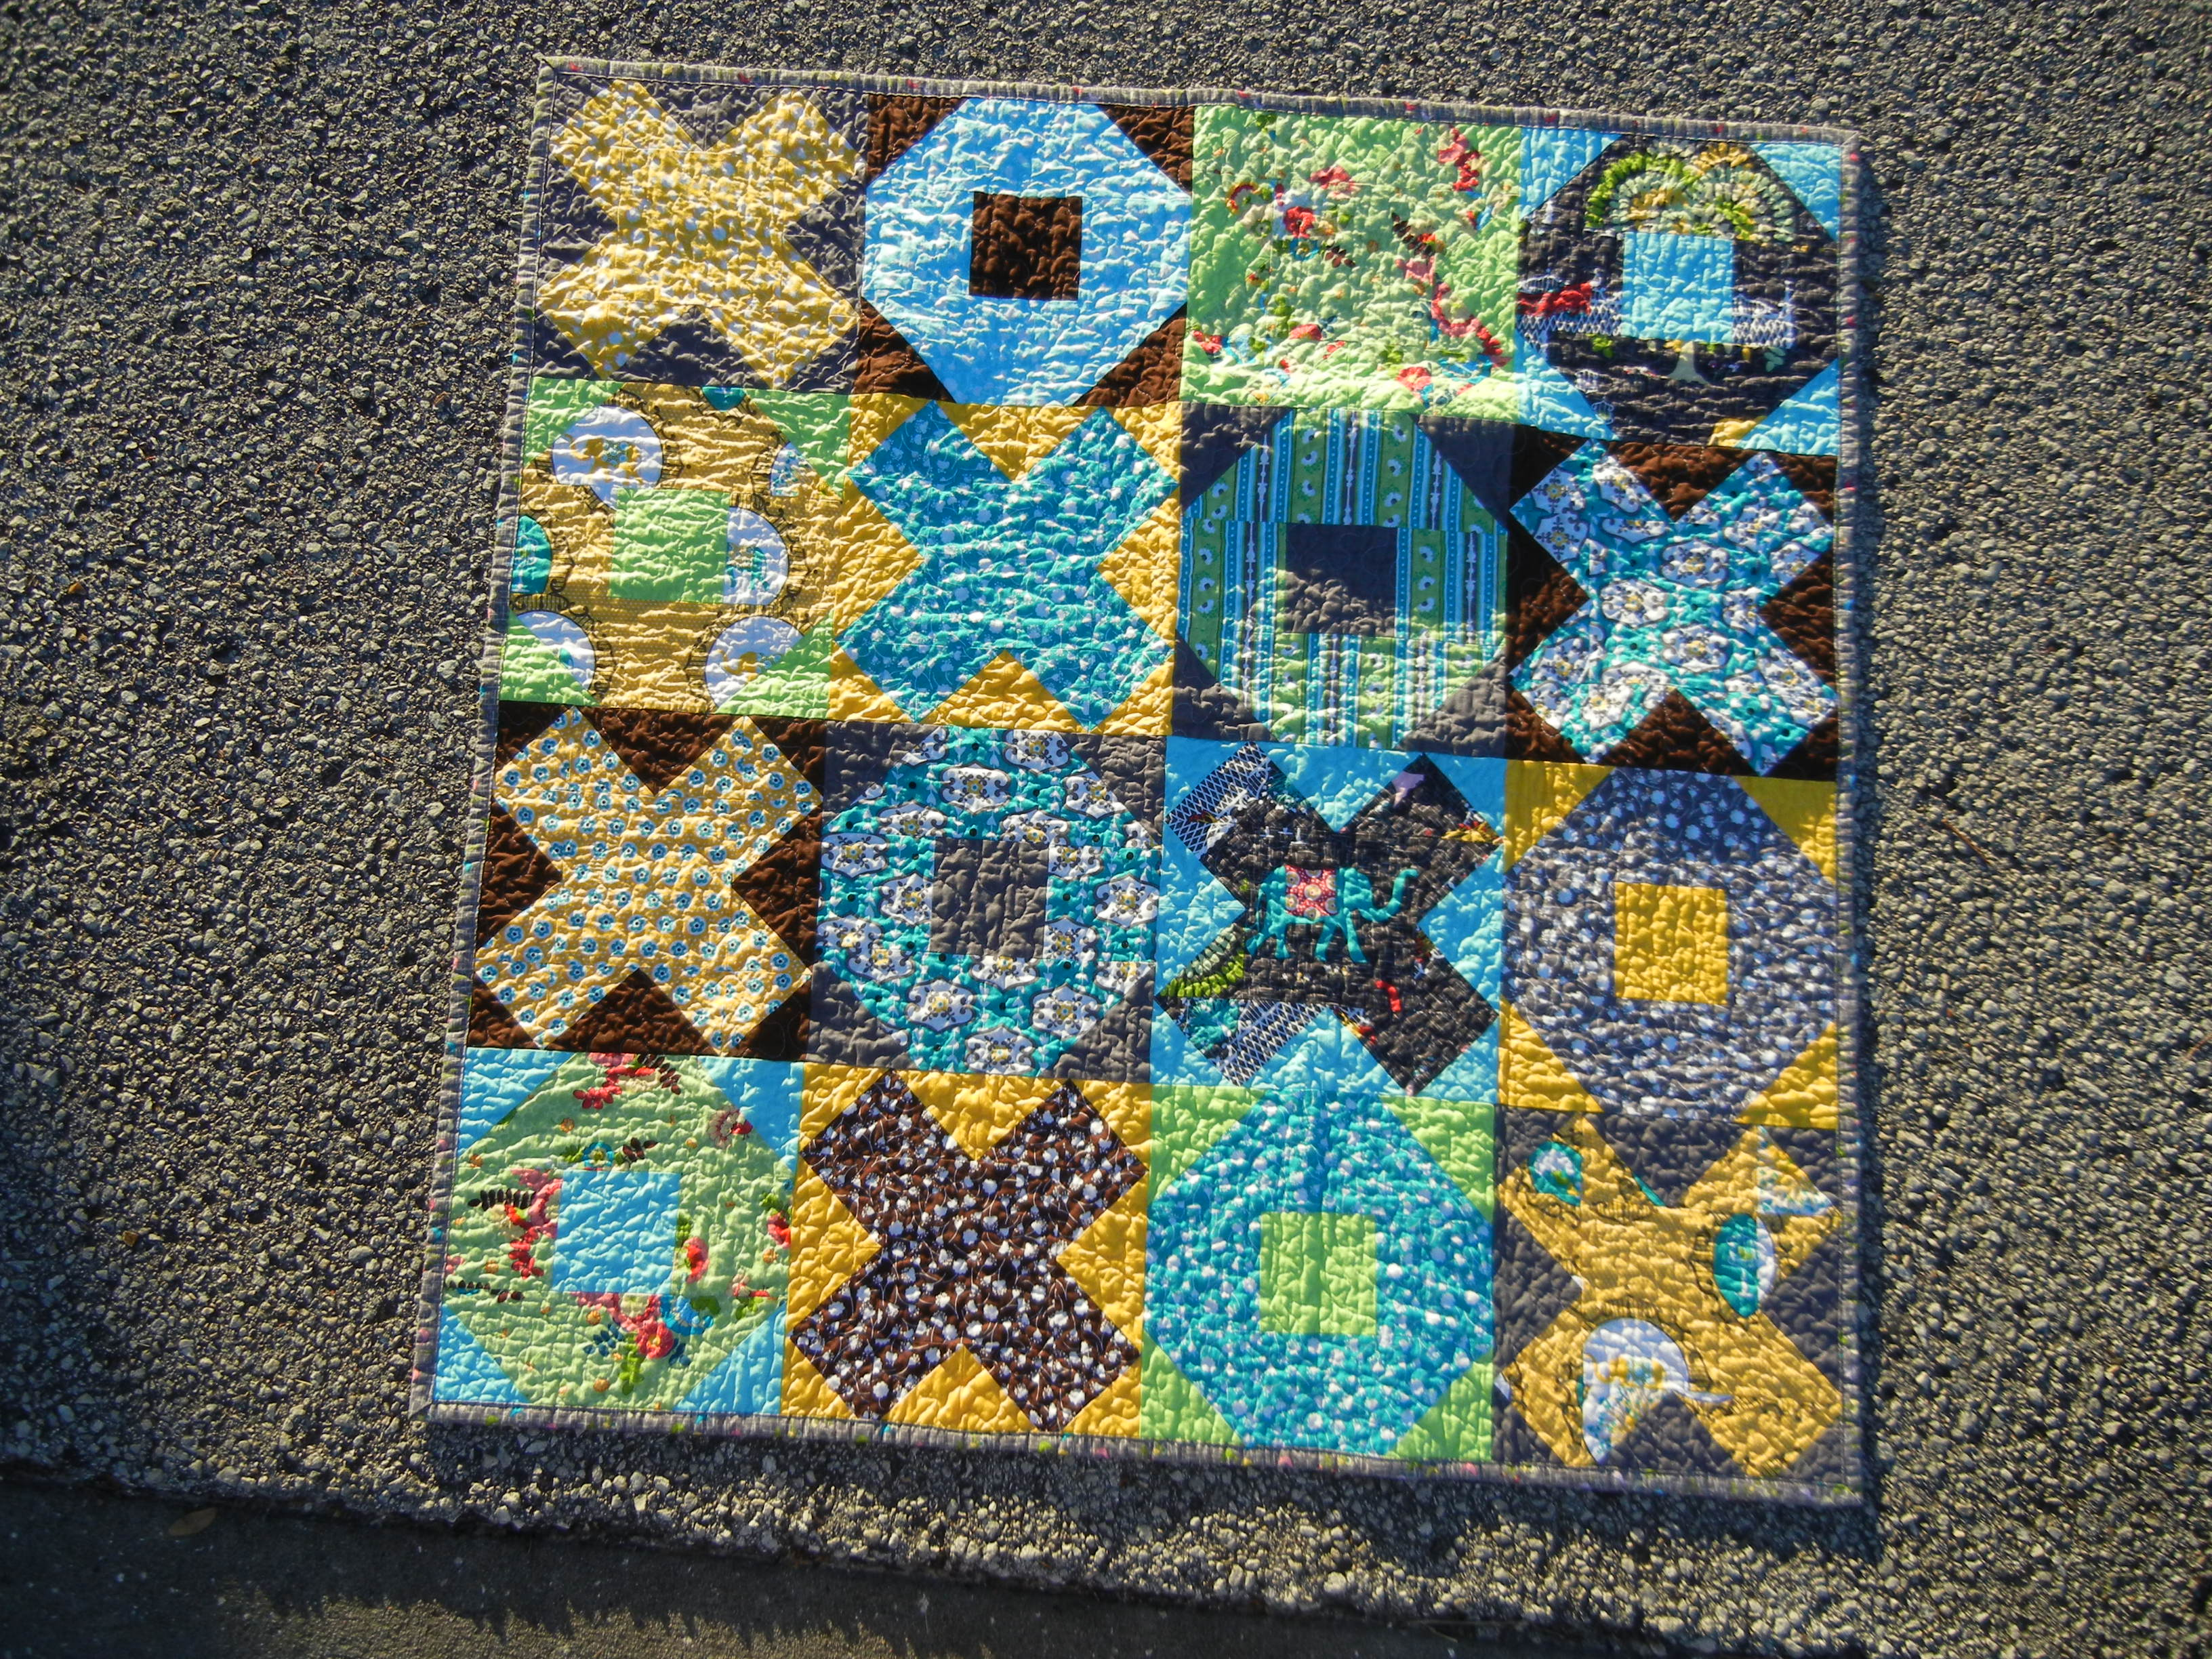 A finished quilt in the street!